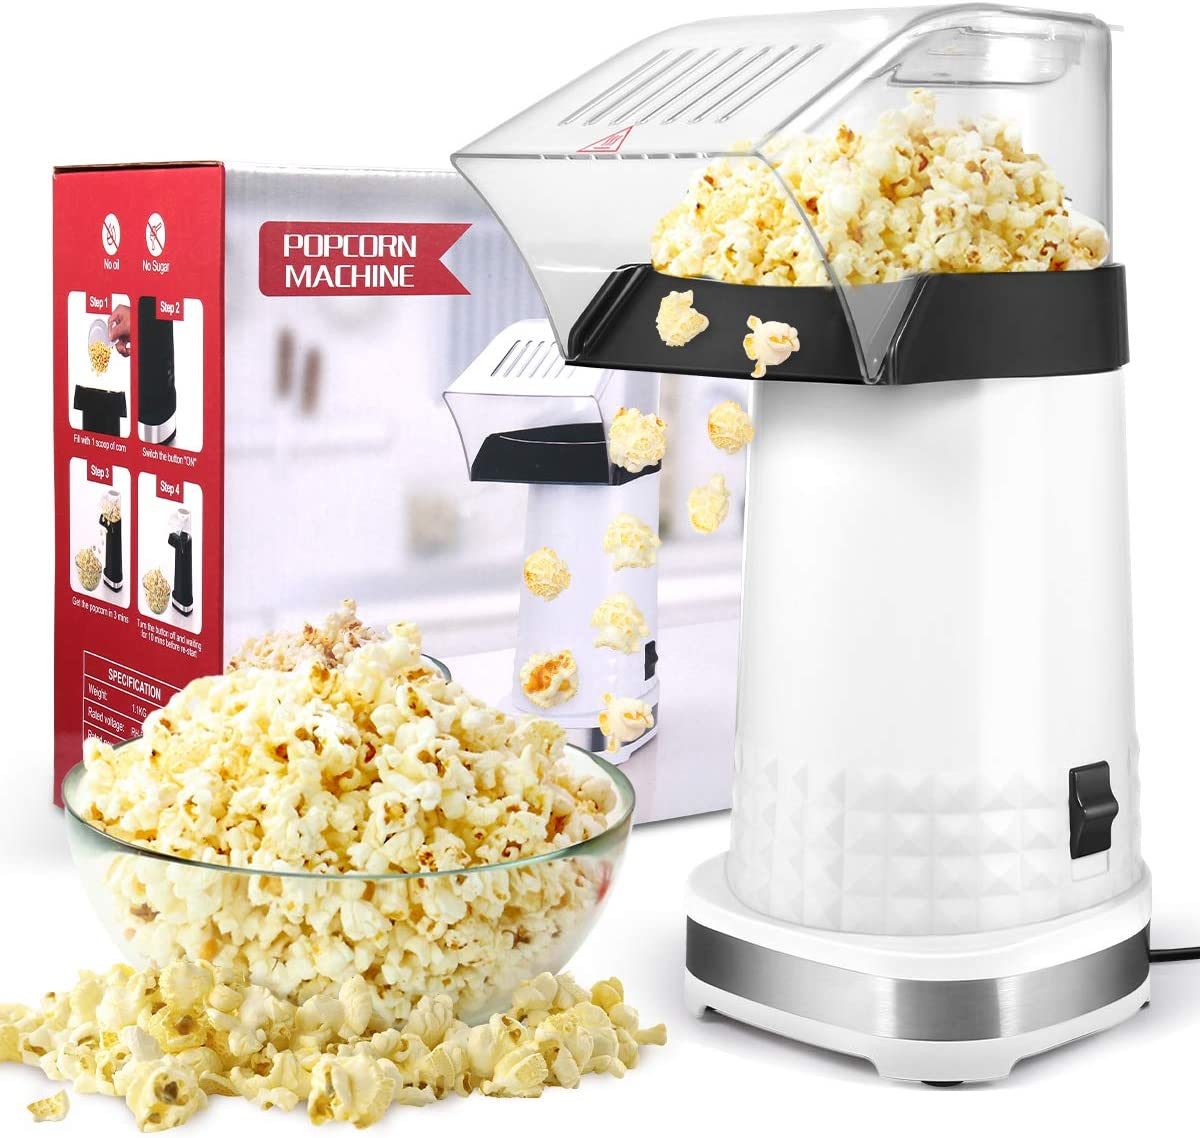 BurstEay Popcorn Machine,1200W Electric Popcorn Maker with Measuring Cup, BPA Free, Low Fat No Oil Needed Fast Hot Air Popcorn Machine for Home, Family, Party (White)